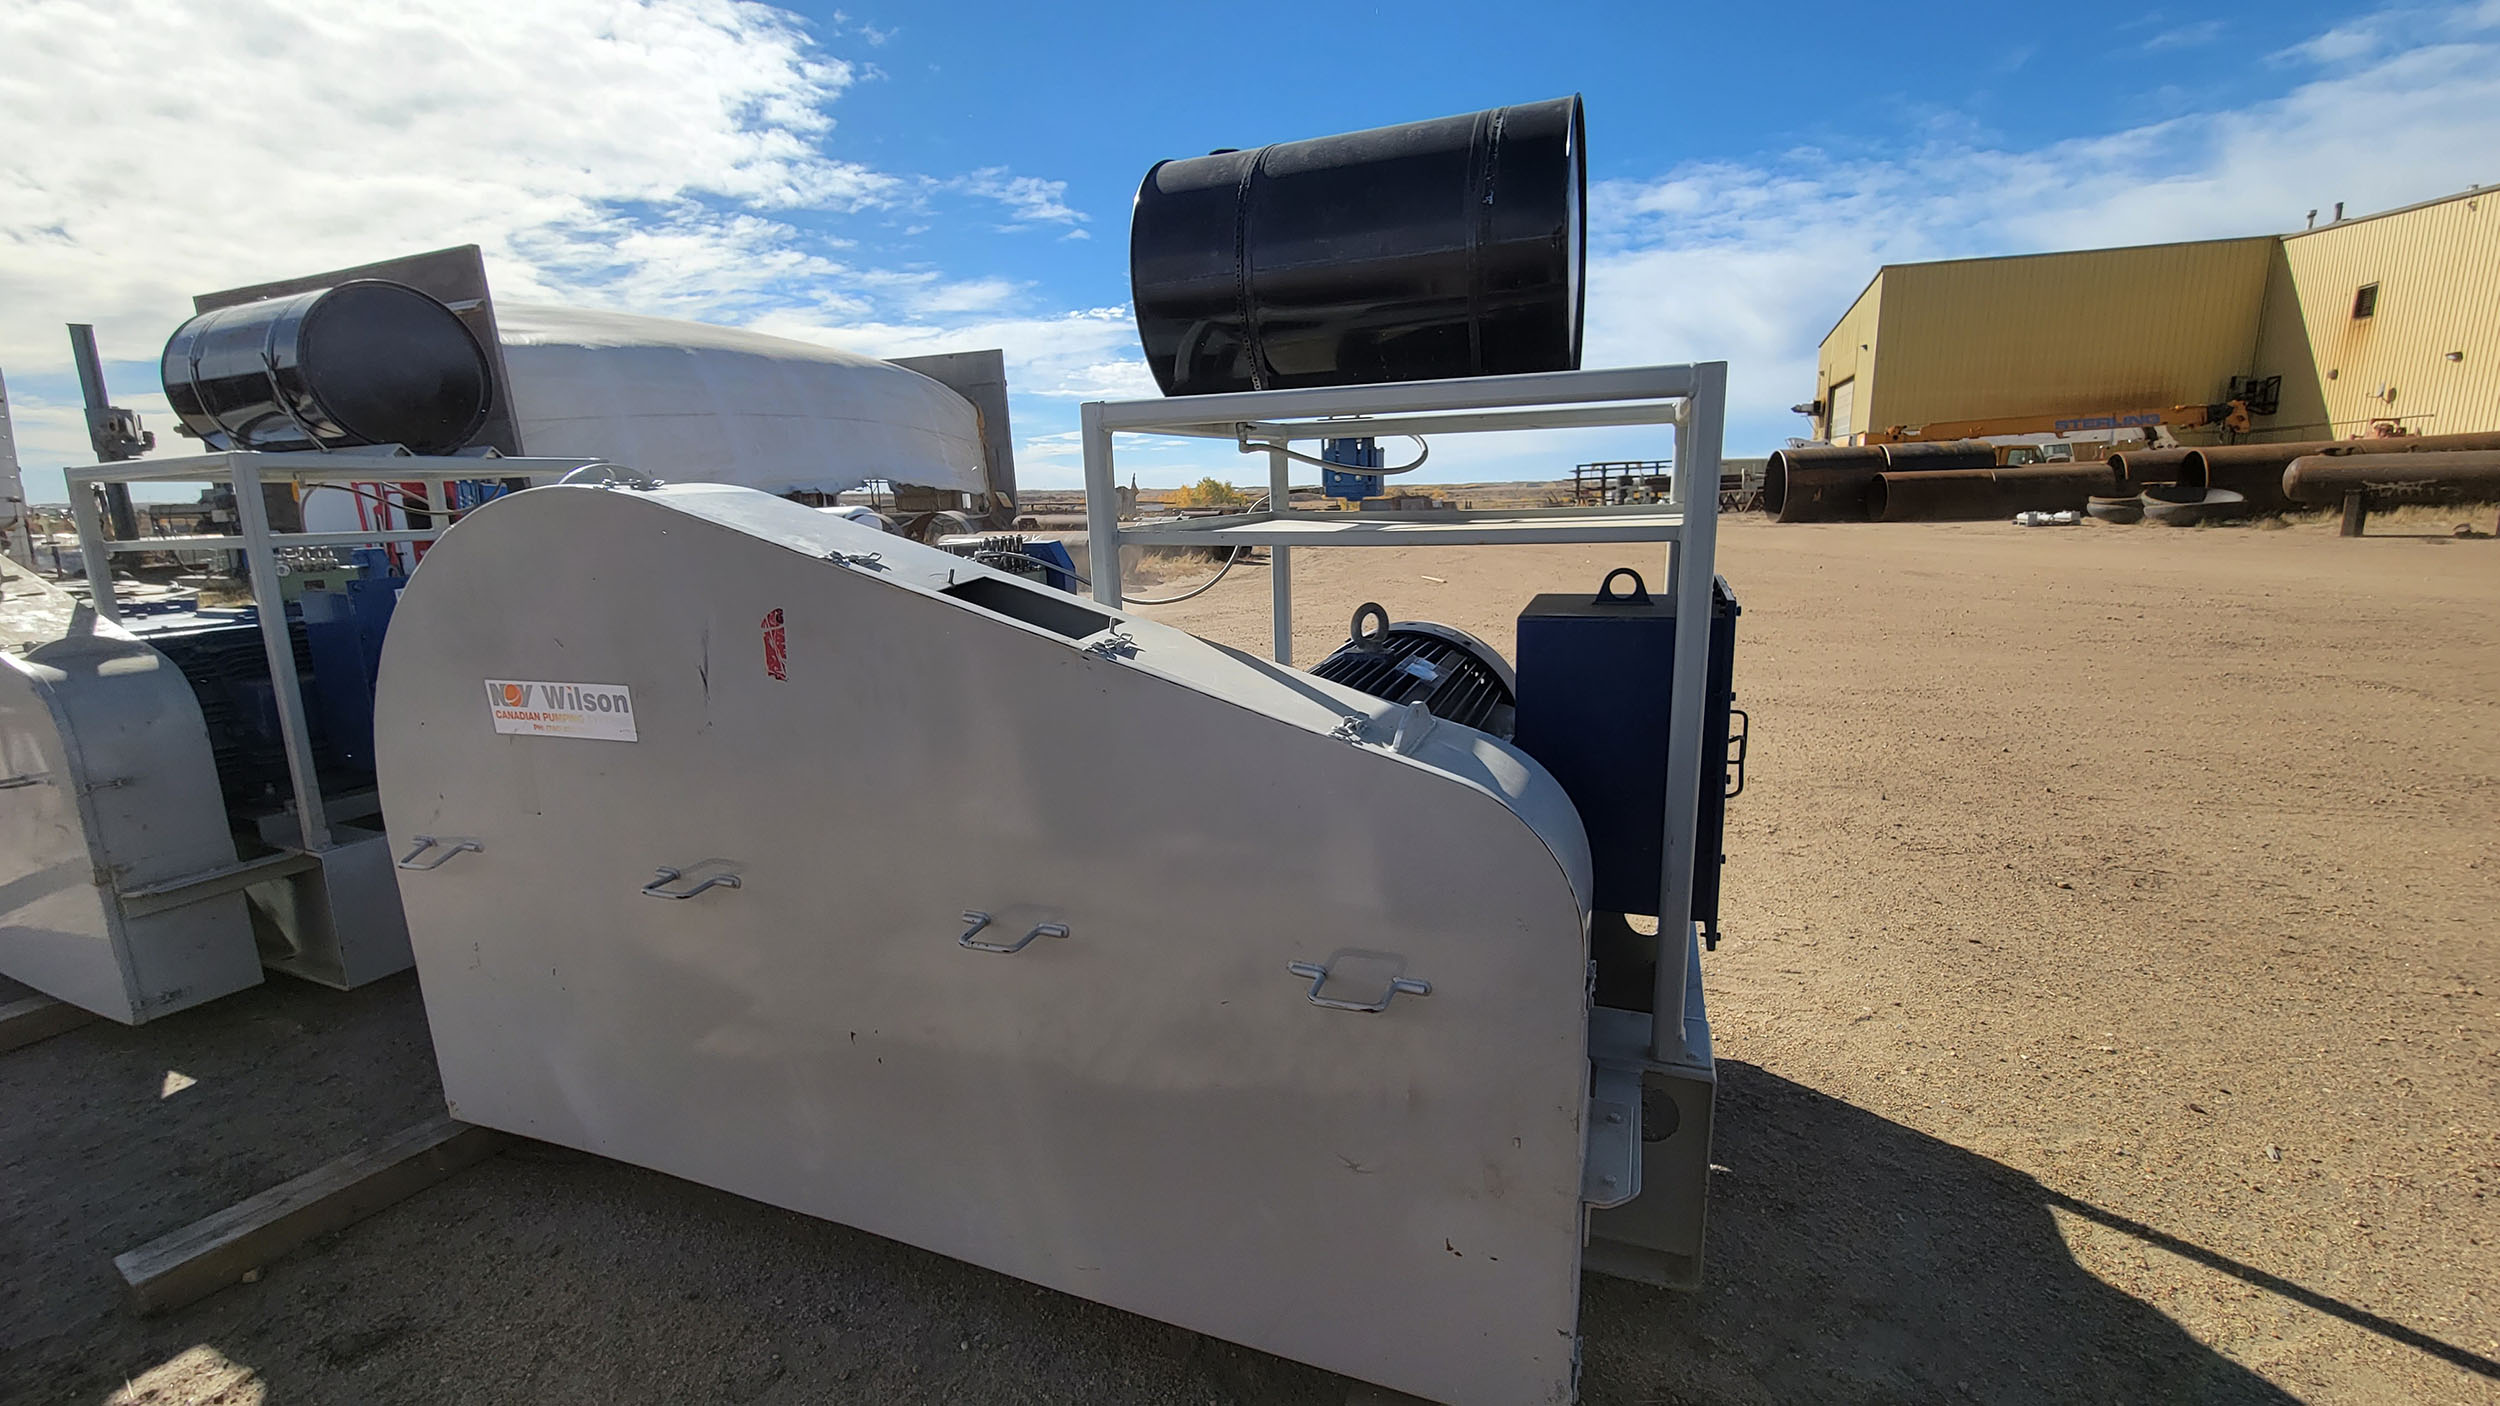 New / Never-used 300HP National 300Q-5M Unitized / Mini Skid Pumps for sale in Alberta Canada surplus oilfield oil and gas equipment 3